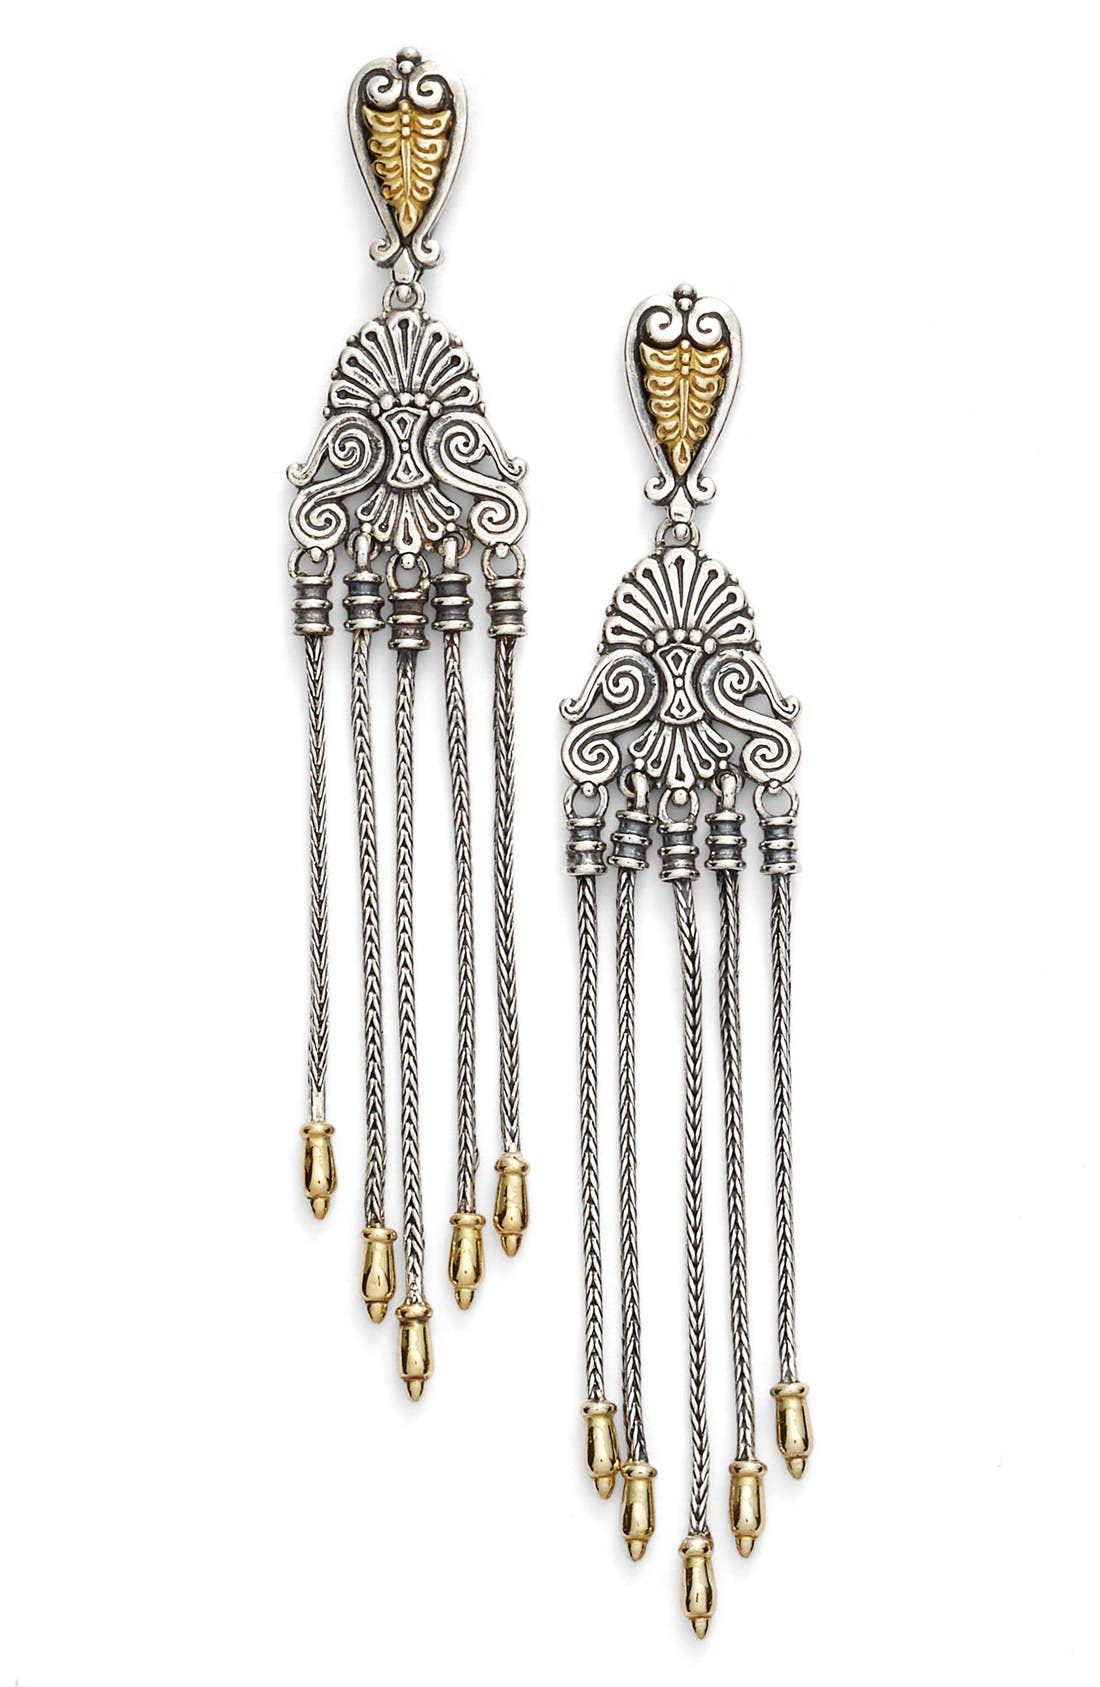 'Penelope' Drop Earrings,                             Main thumbnail 1, color,                             Silver/ Gold